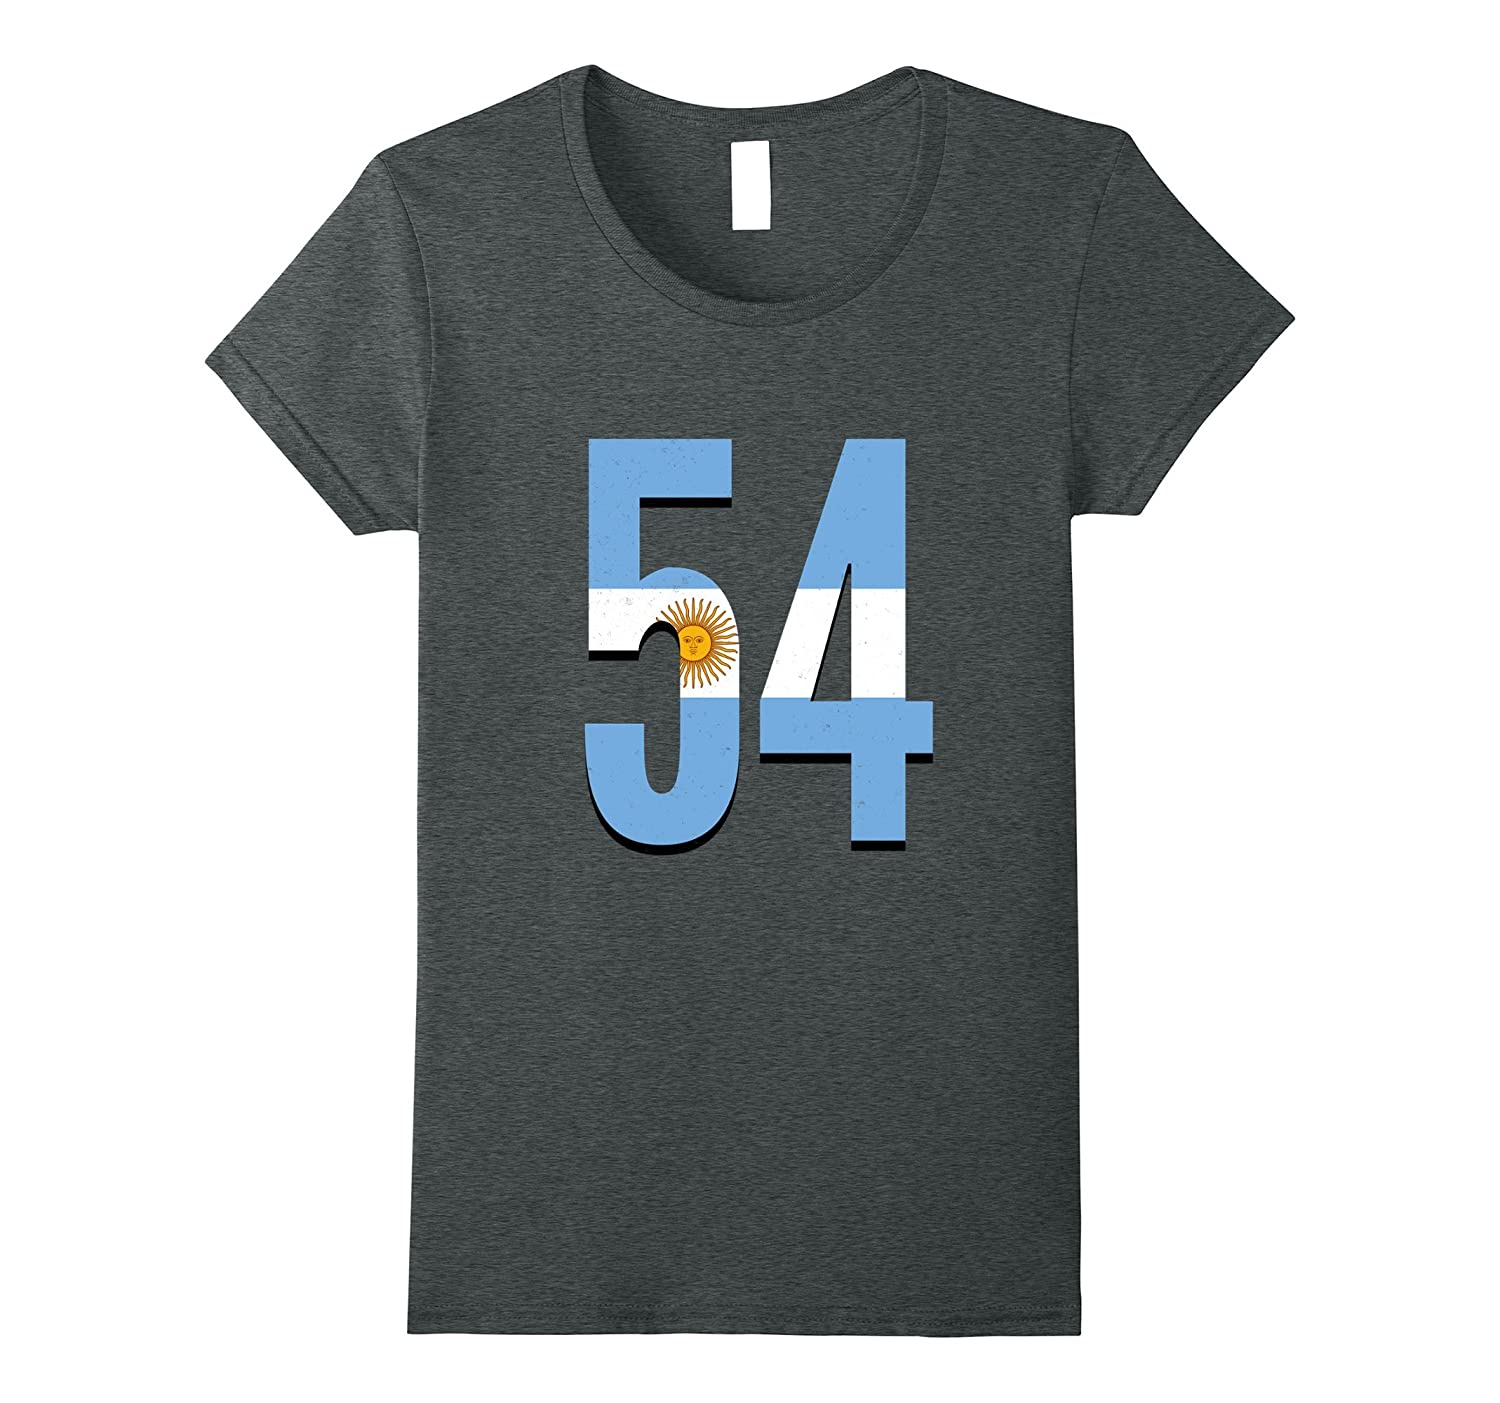 54 Argentina Argentinian Country Area Code Pride Flag T-Shir